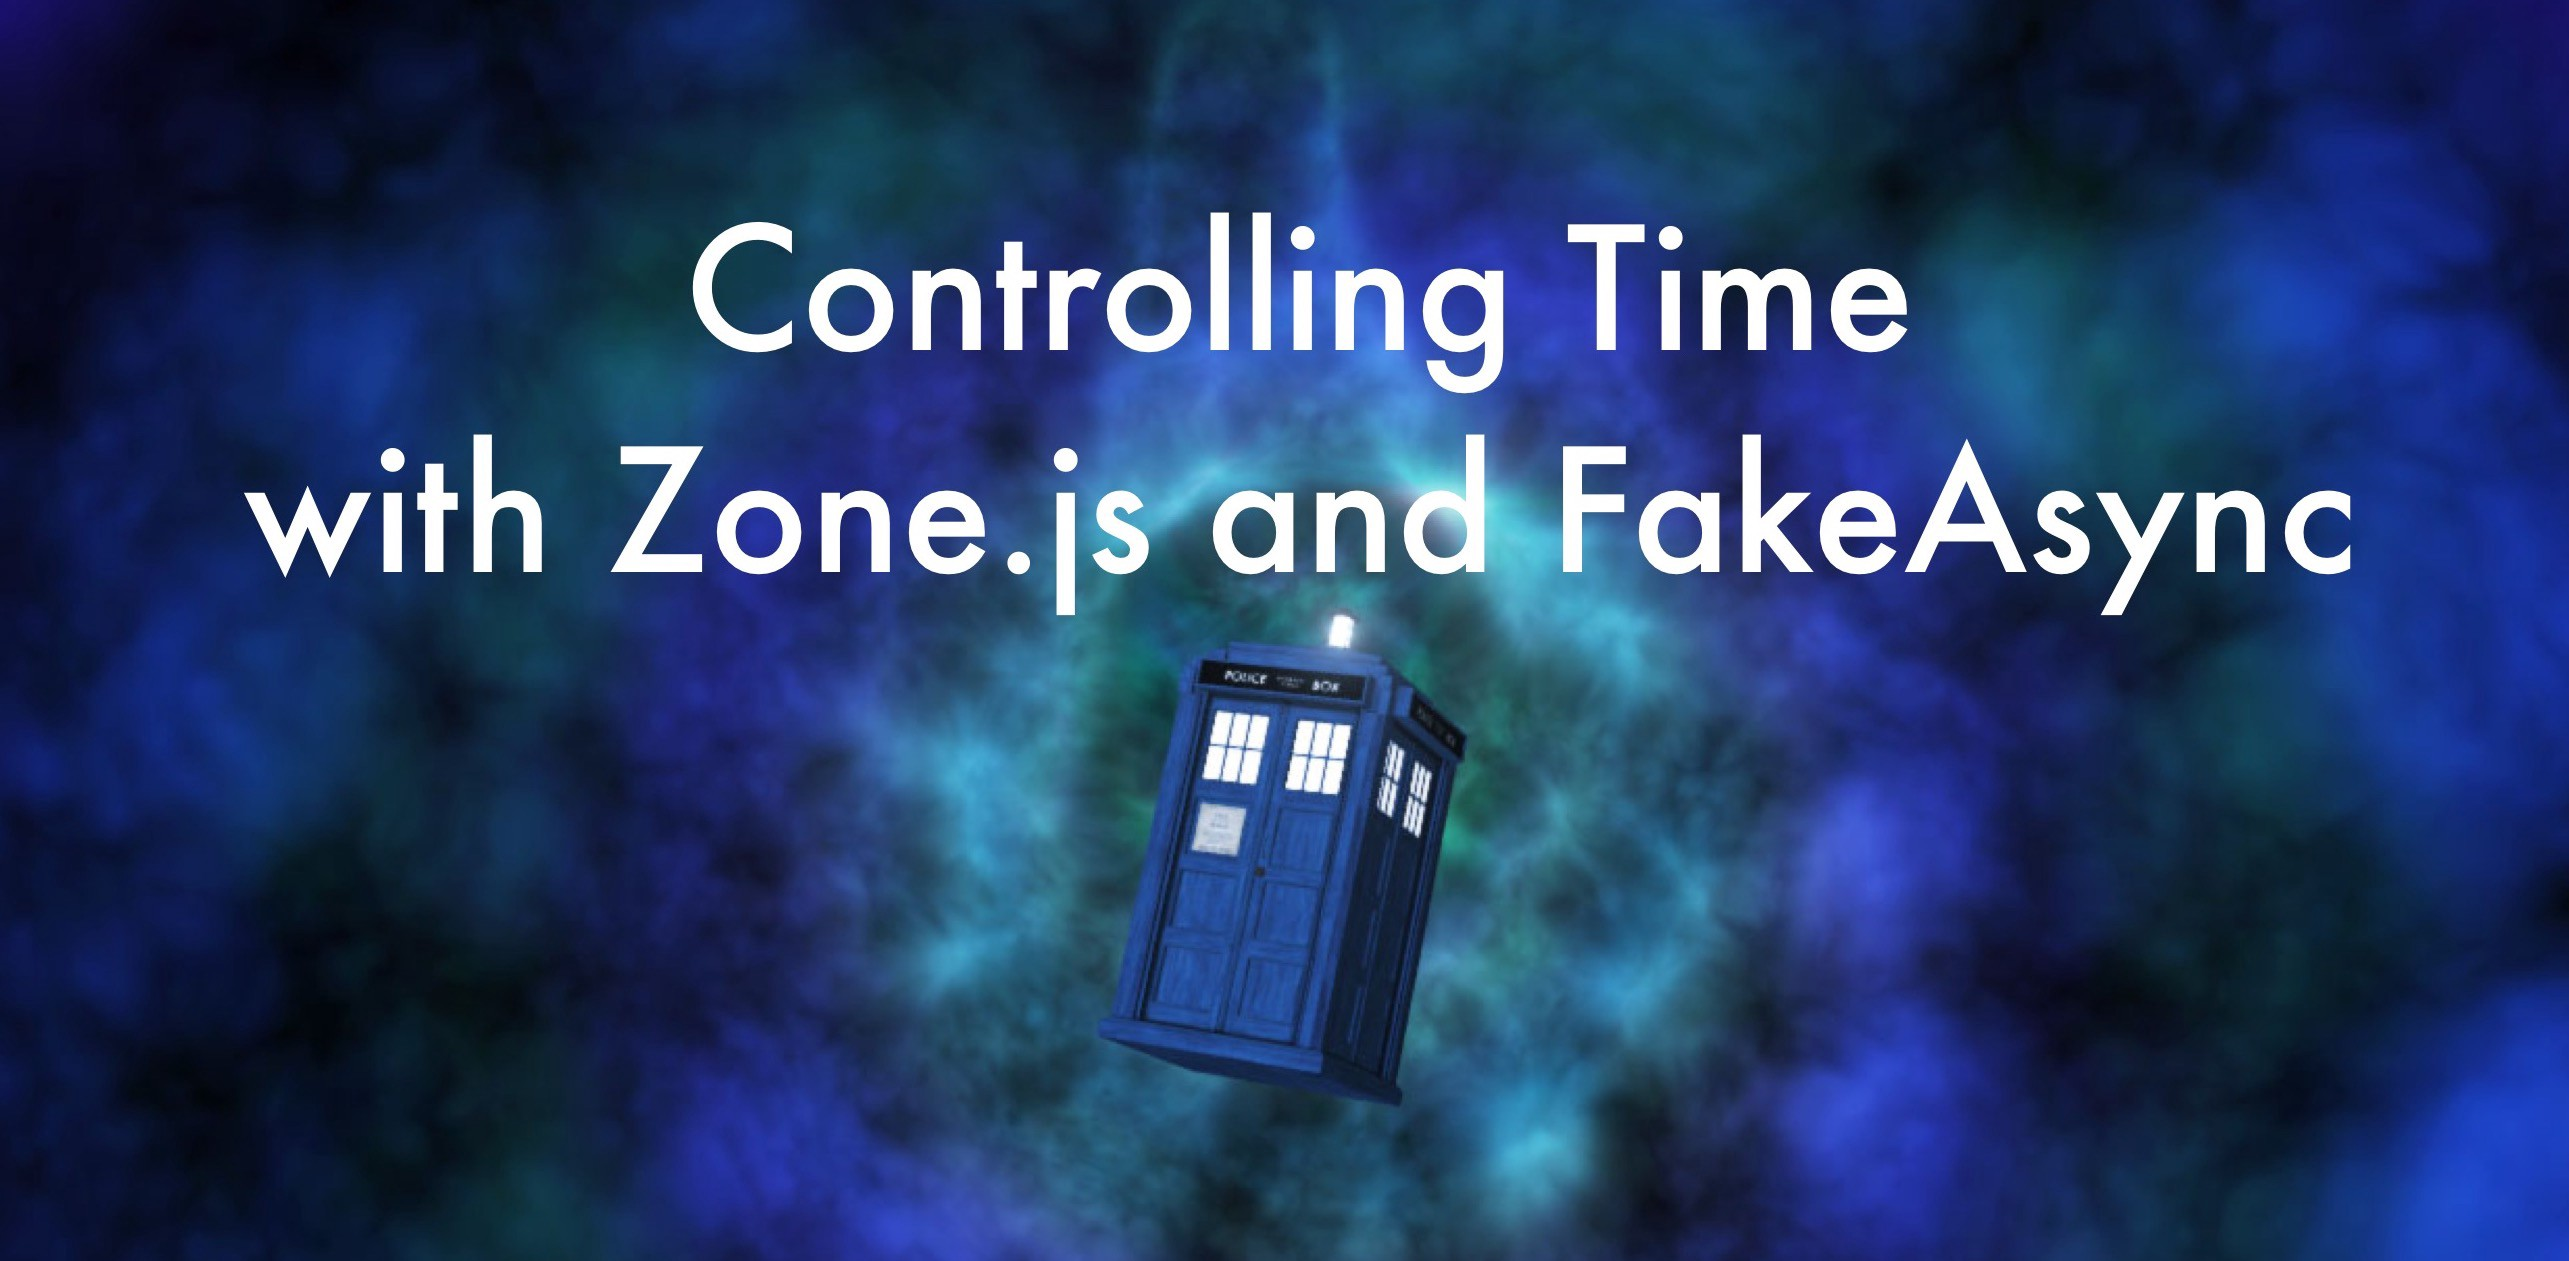 Controlling Time with Zone js and FakeAsync - Nrwl